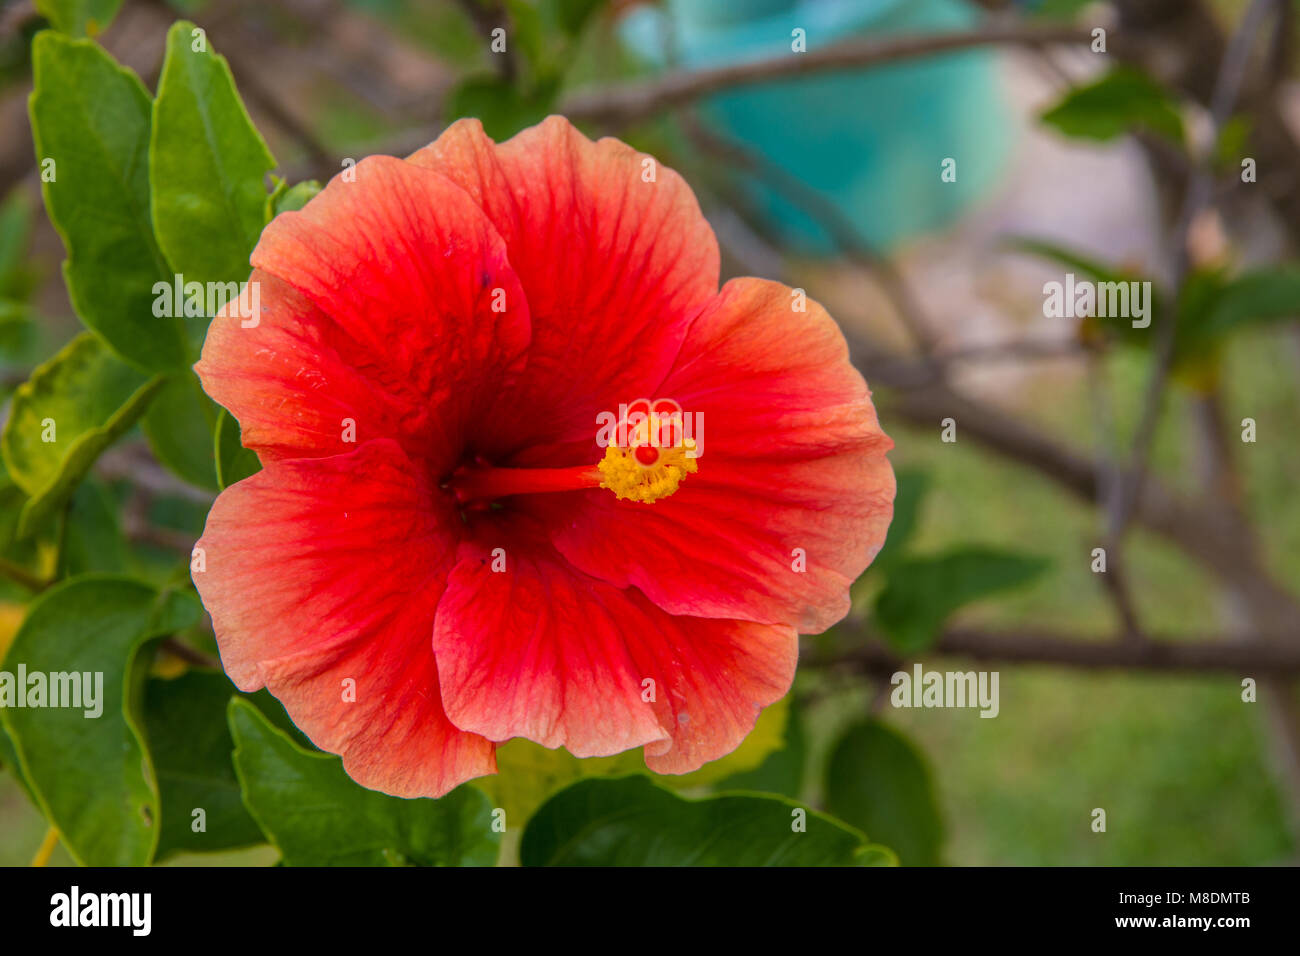 A close shot of a hibiscus rosa sinensis the national flower of a close shot of a hibiscus rosa sinensis the national flower of stock photo 177322667 alamy izmirmasajfo Choice Image